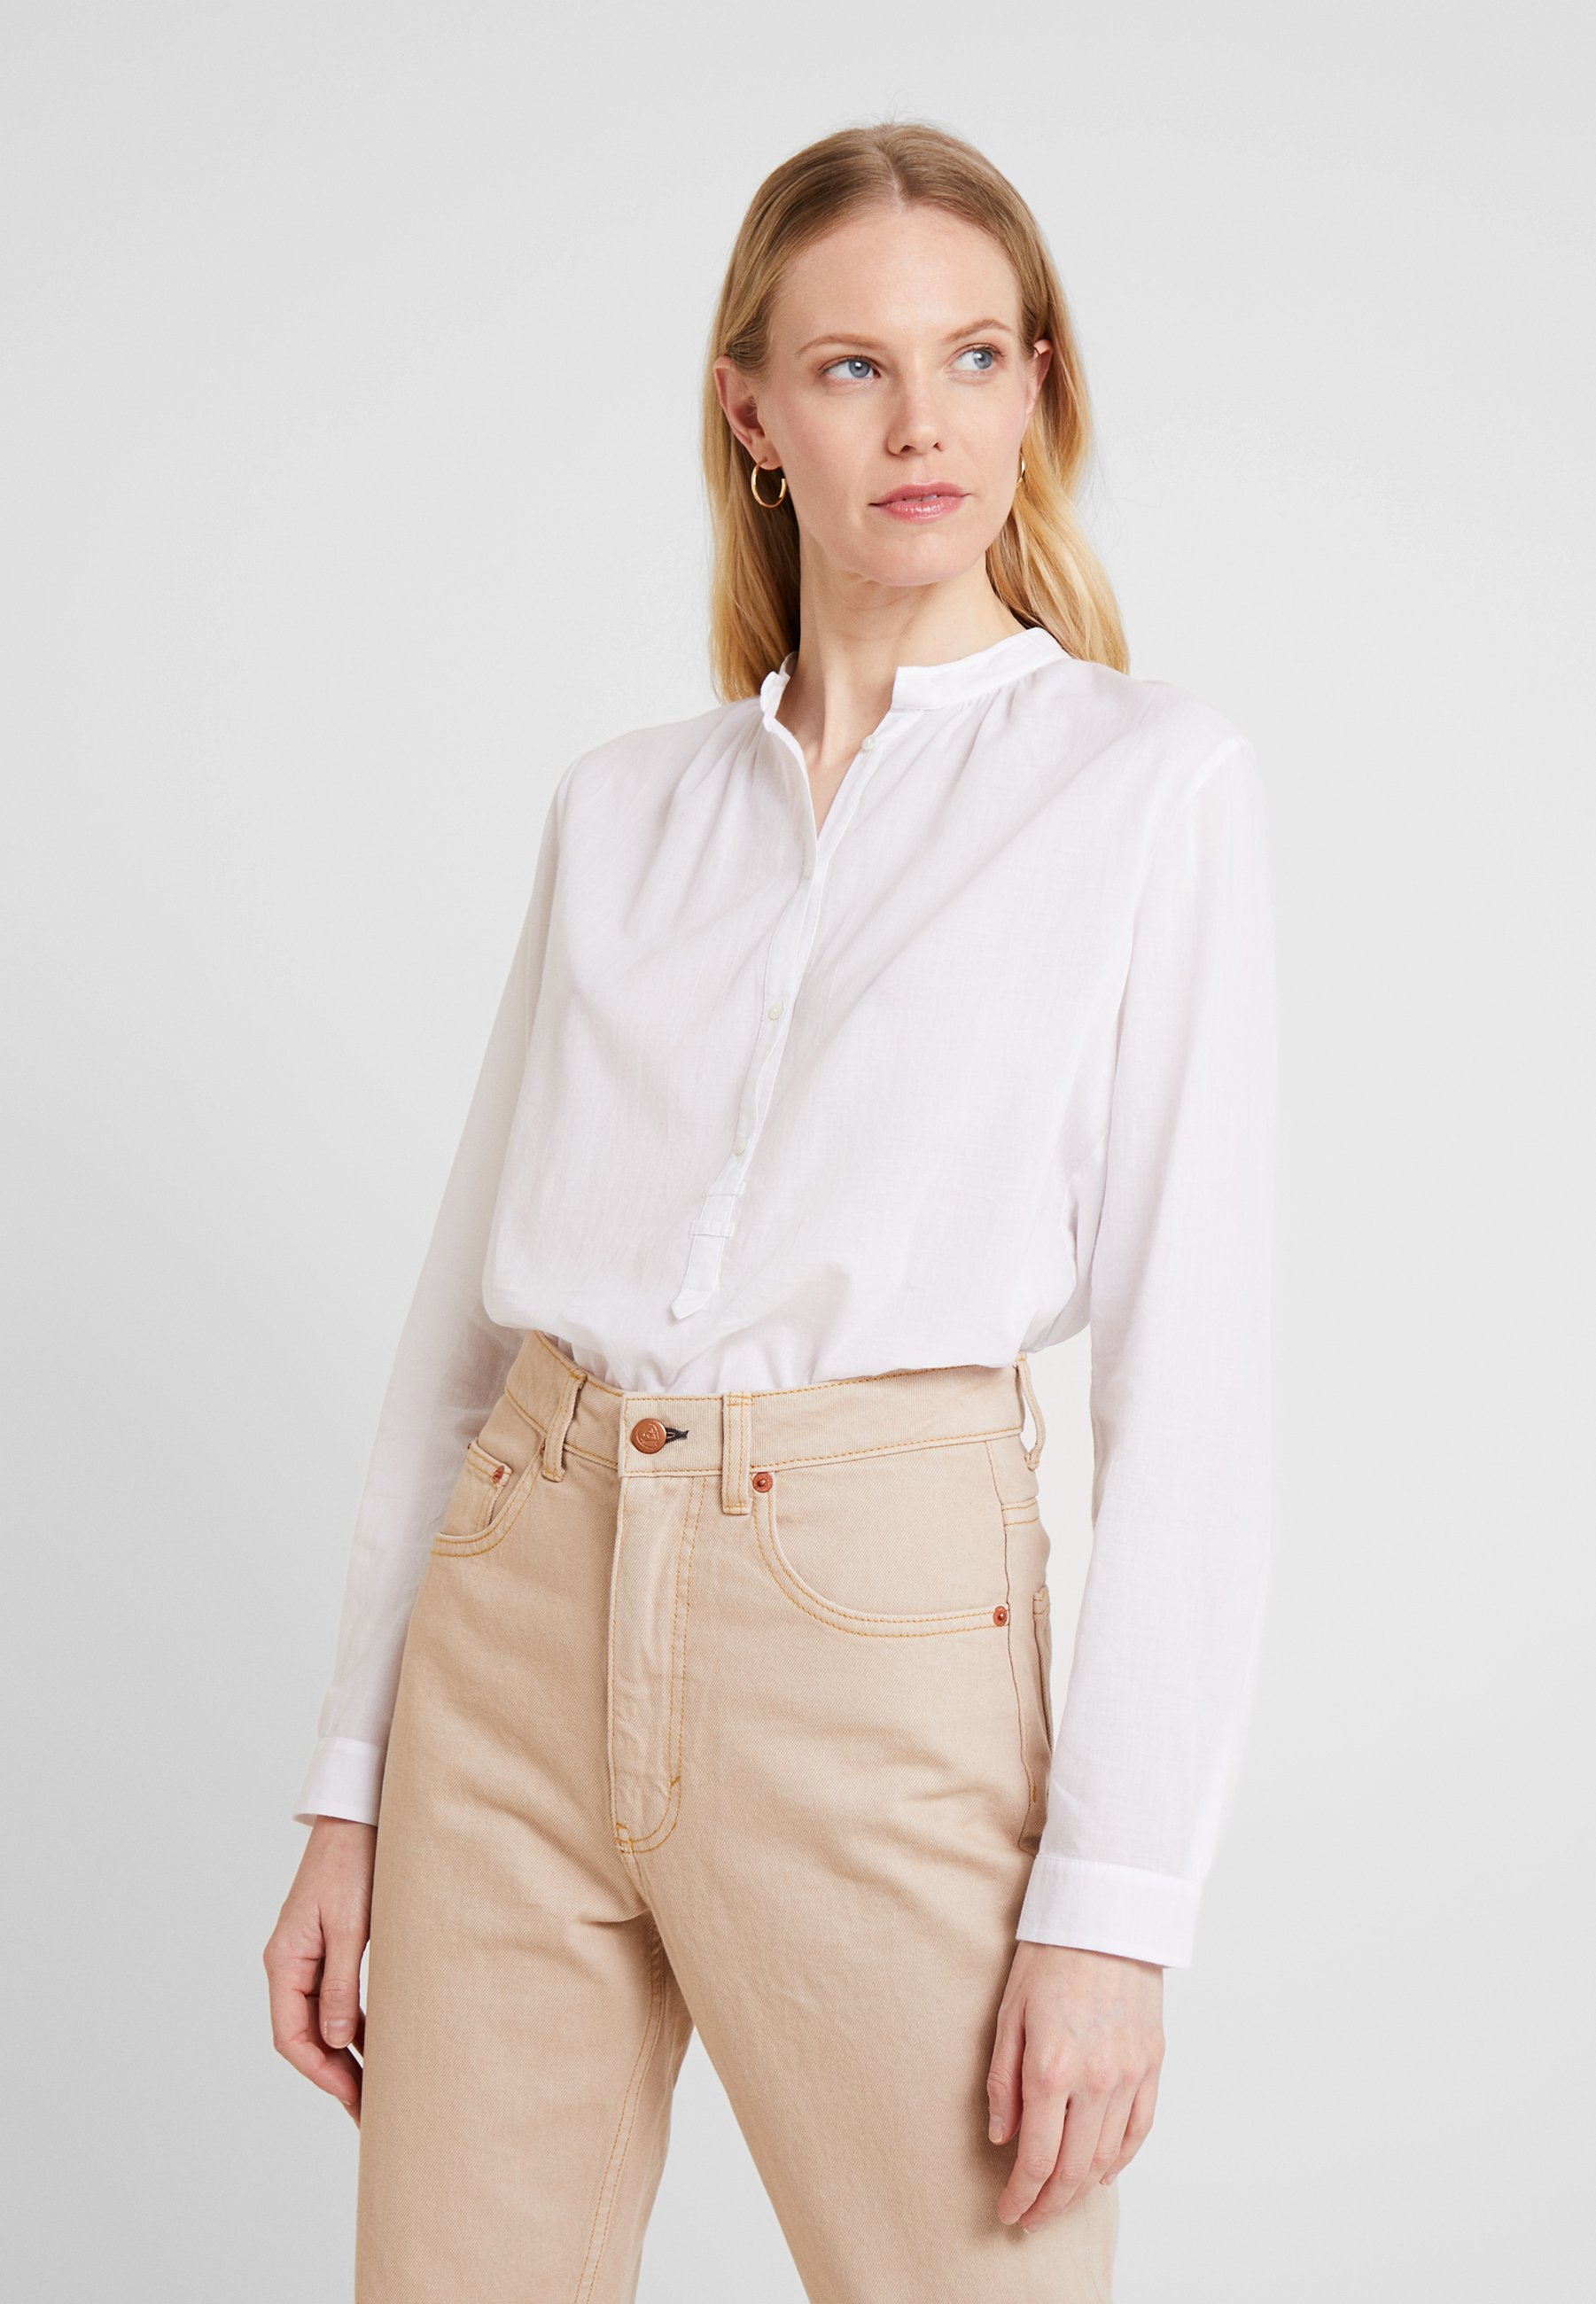 Blouse Marc O'polo GatheringWhite With Neck WIEH9D2